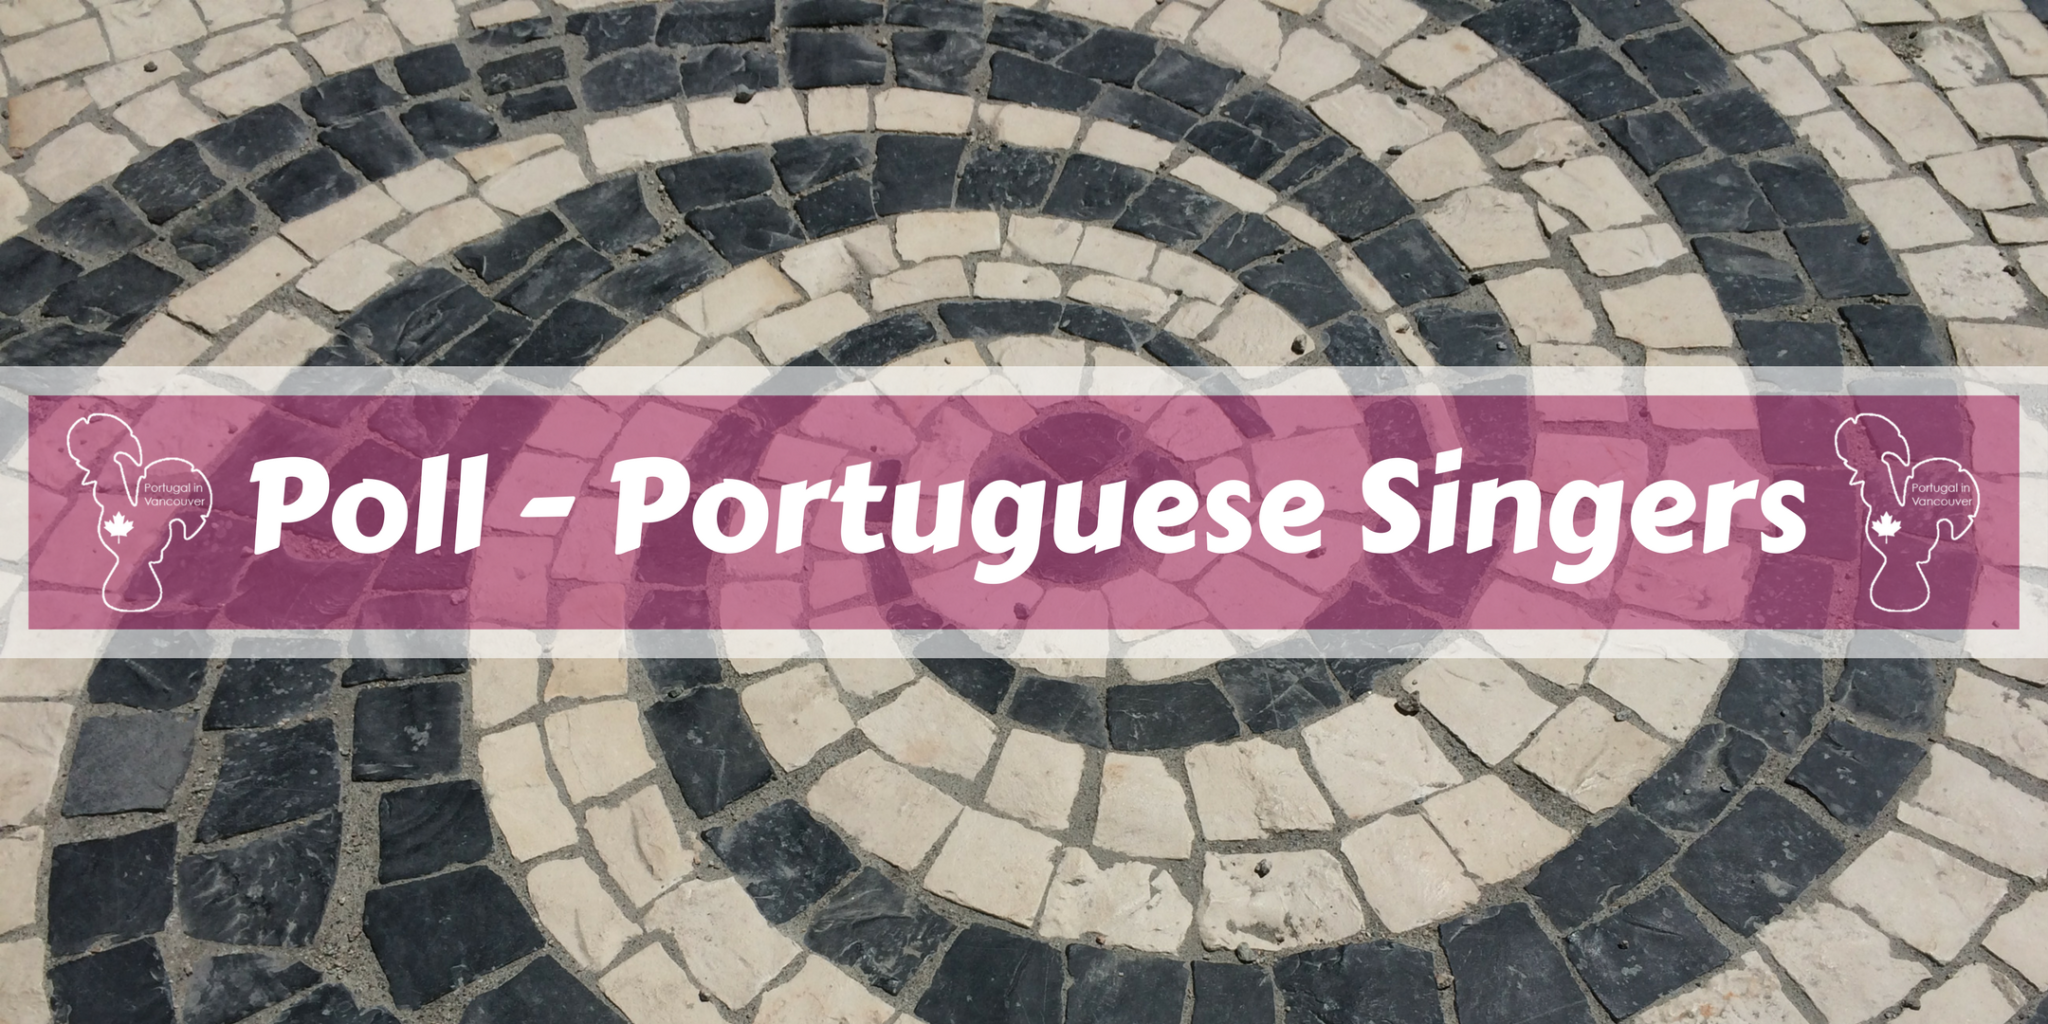 Poll Portuguese Singers